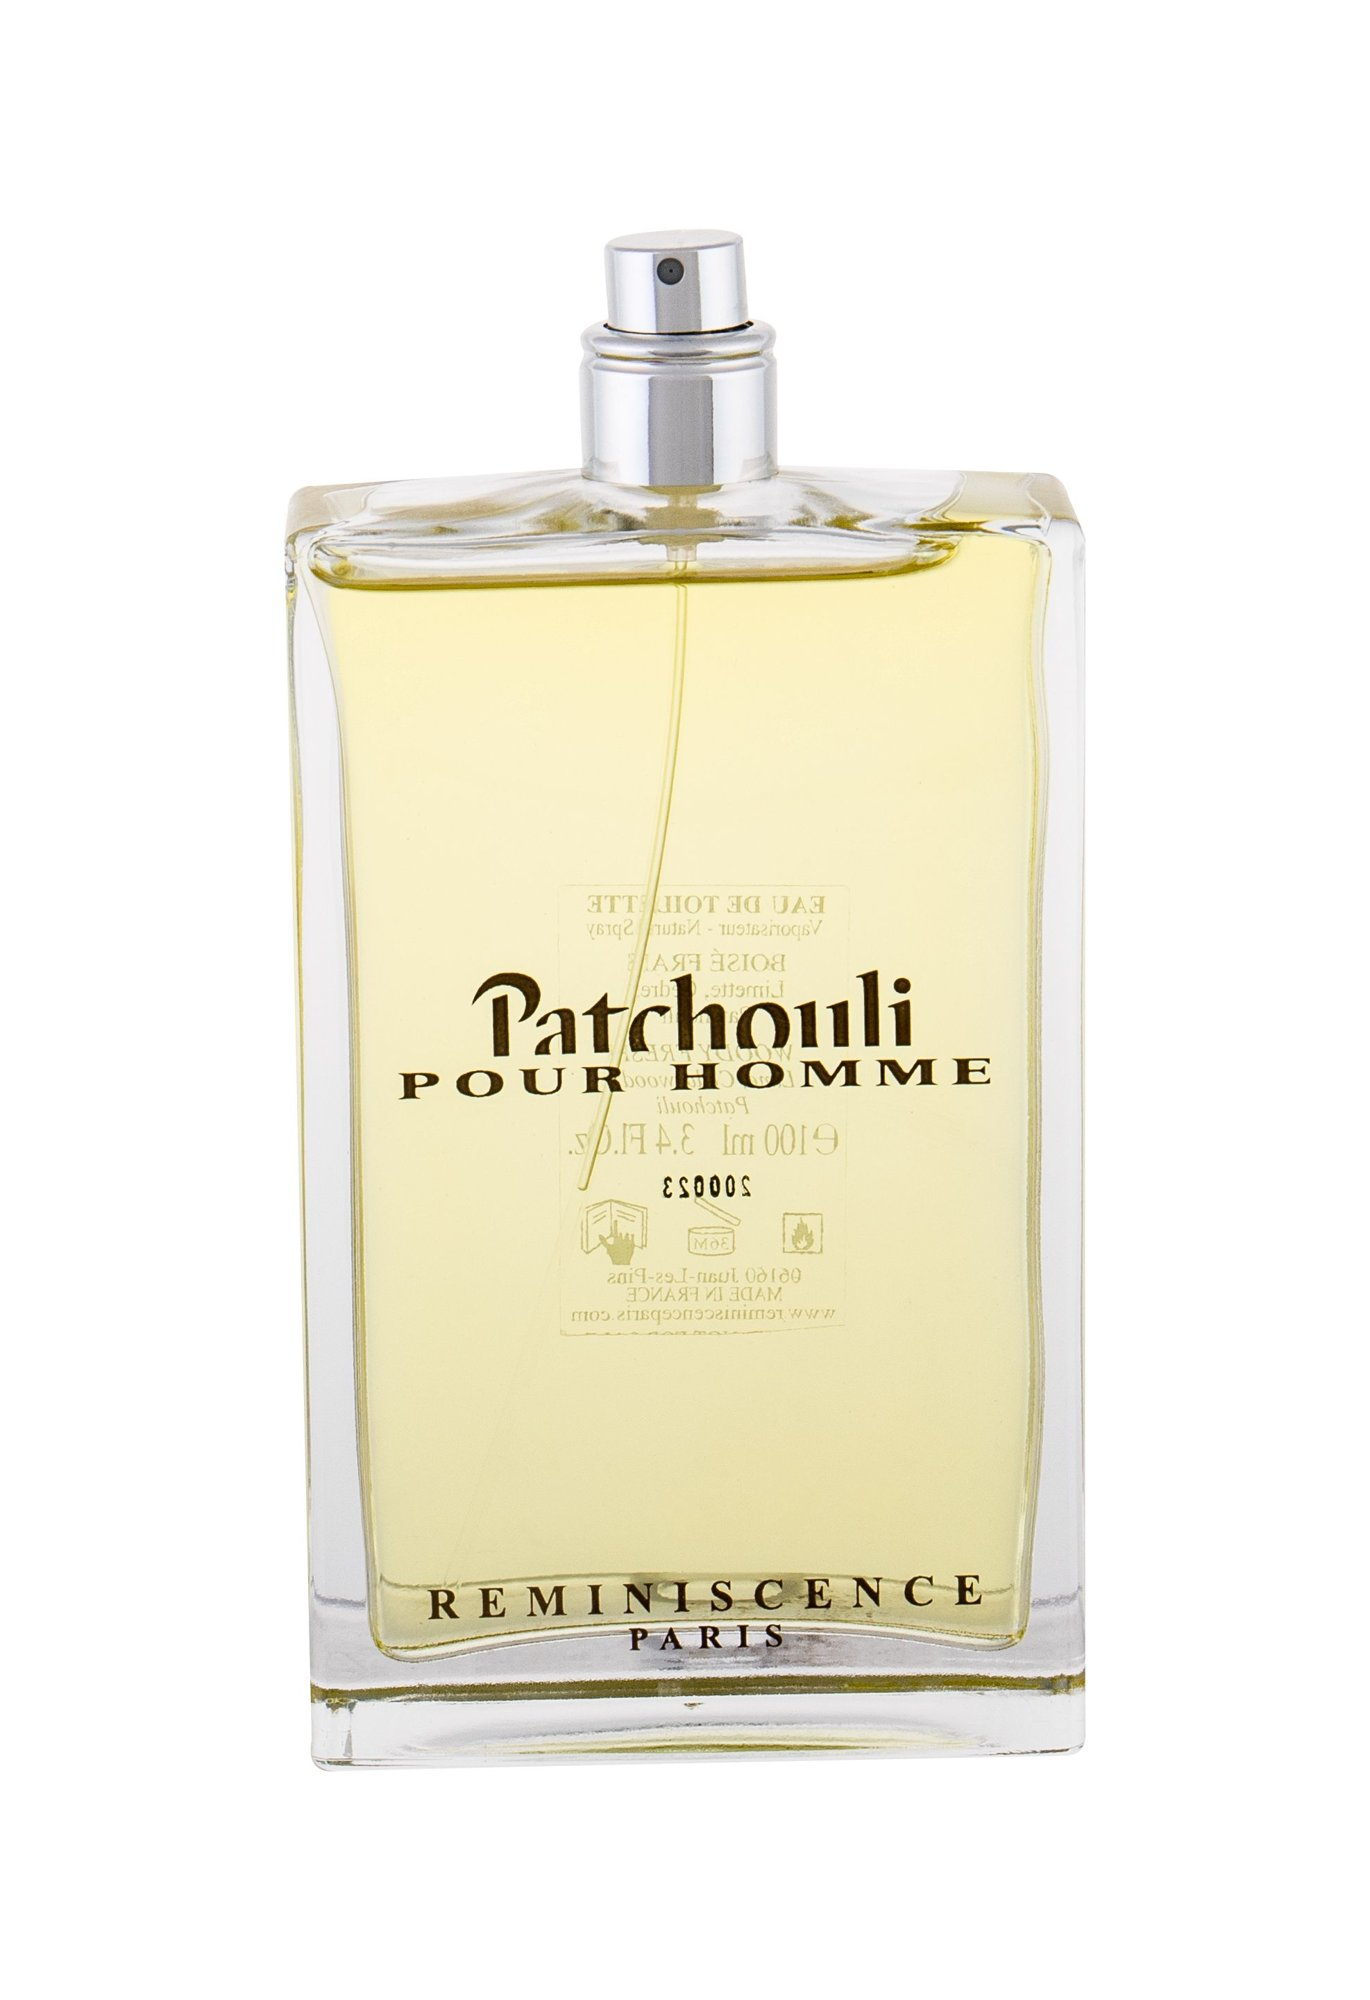 Reminiscence Patchouli Homme Eau de Toilette 100ml